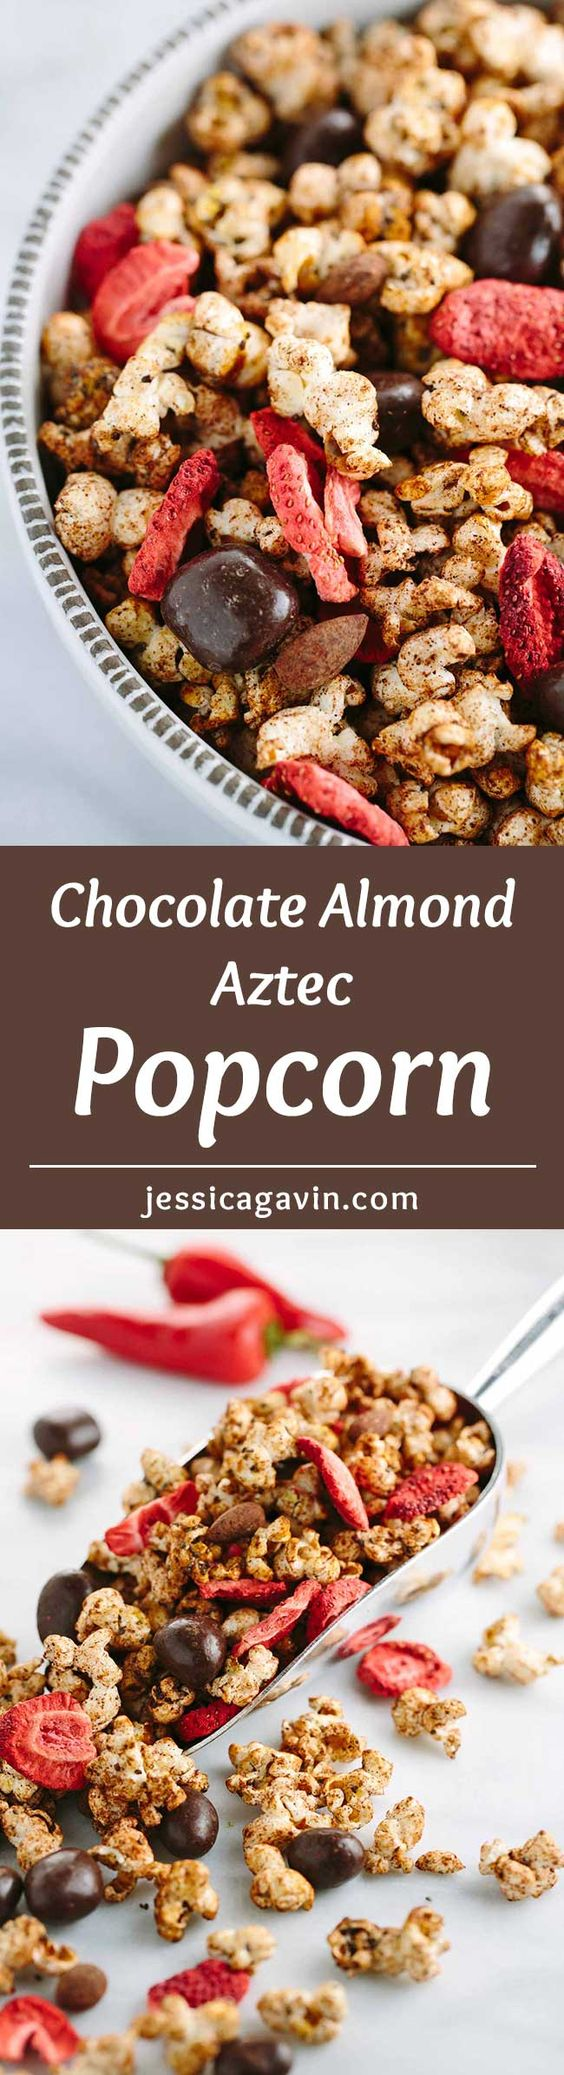 Chocolate Almond Aztec Popcorn with Strawberries - Combines exciting ...